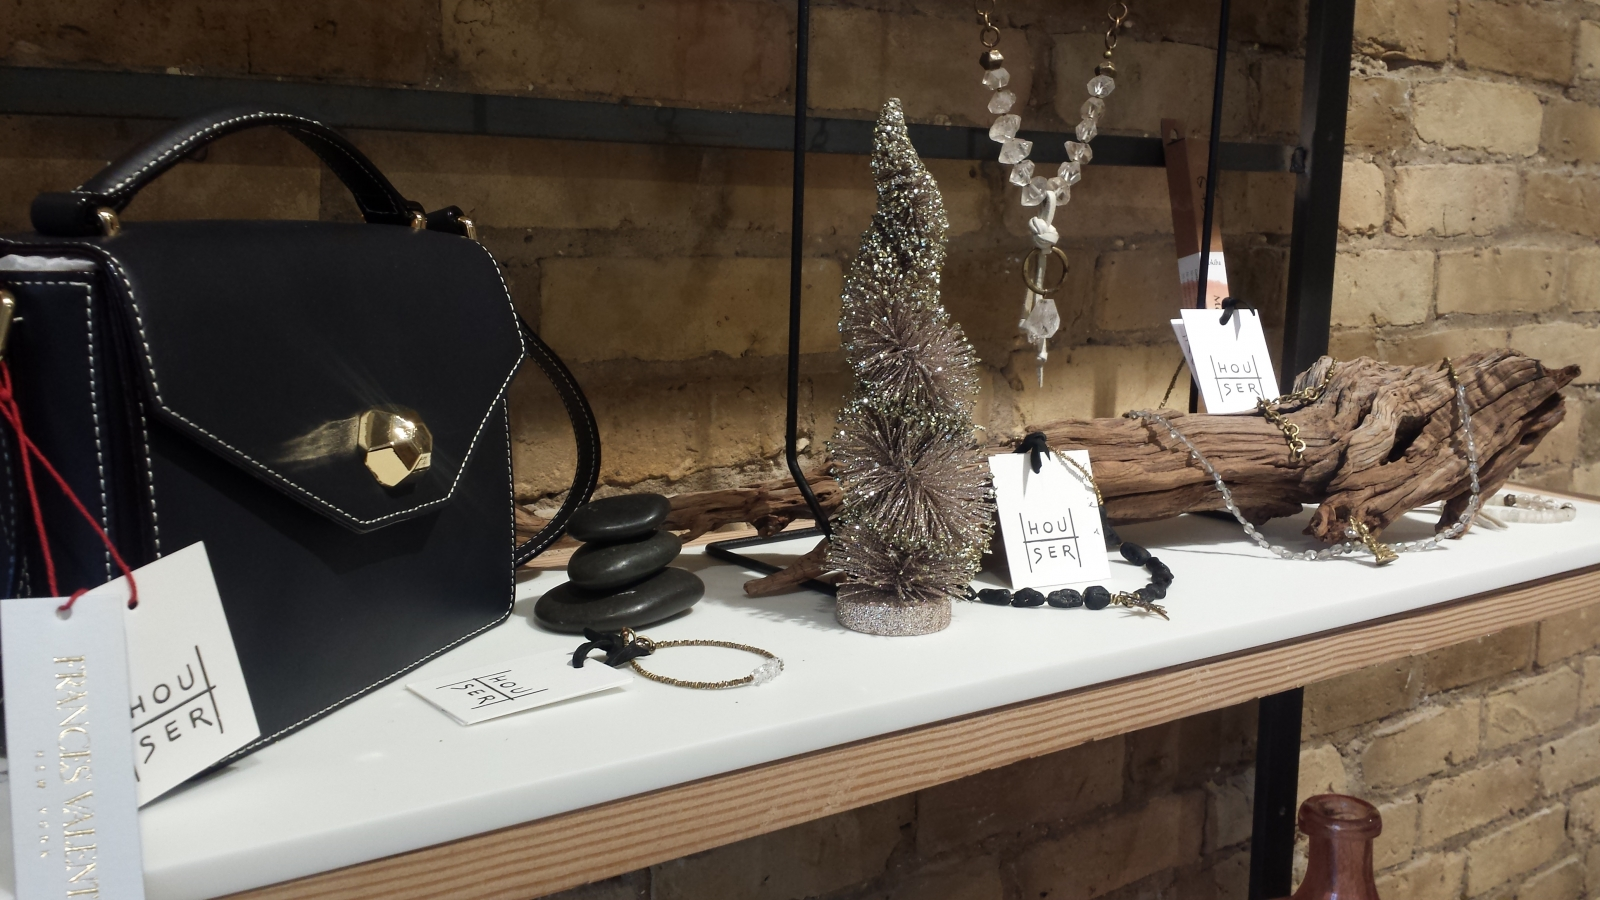 Some of the accessories at Houser in North Loop. Photo by Lianna Matt.